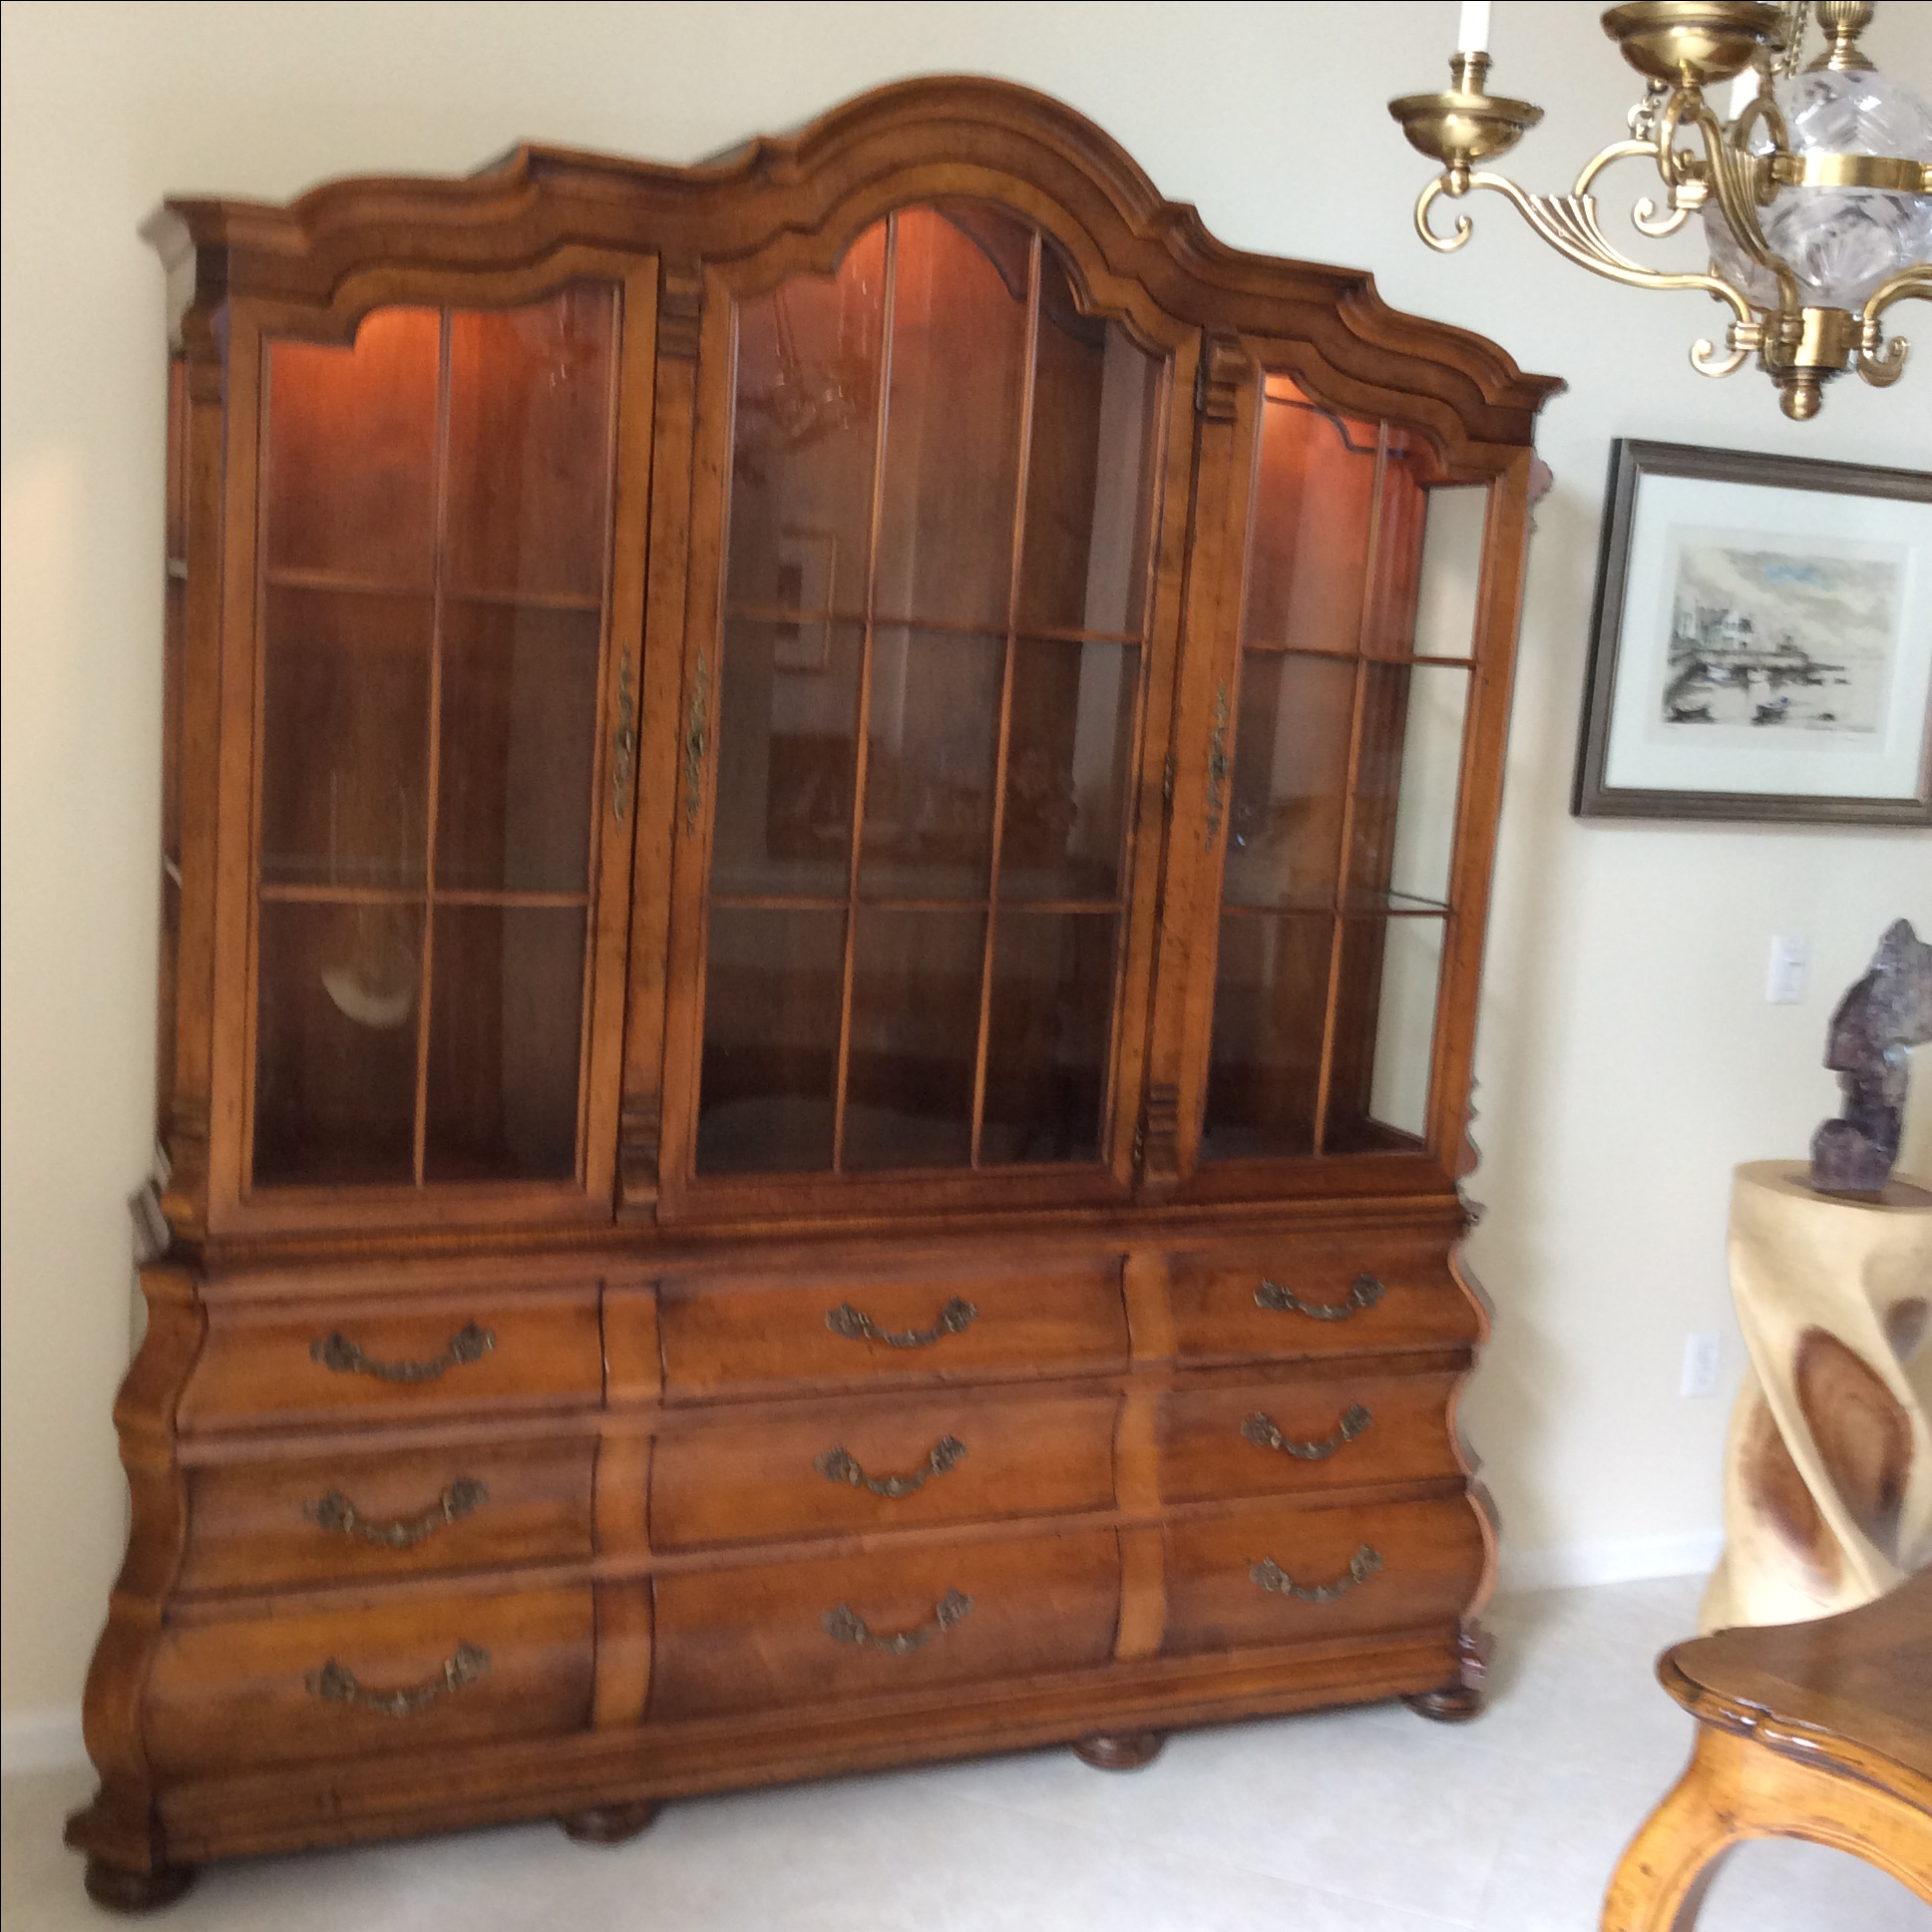 French Provincial Kitchen Cabinets: Henredon French Provincial Pecan Display Cabinet